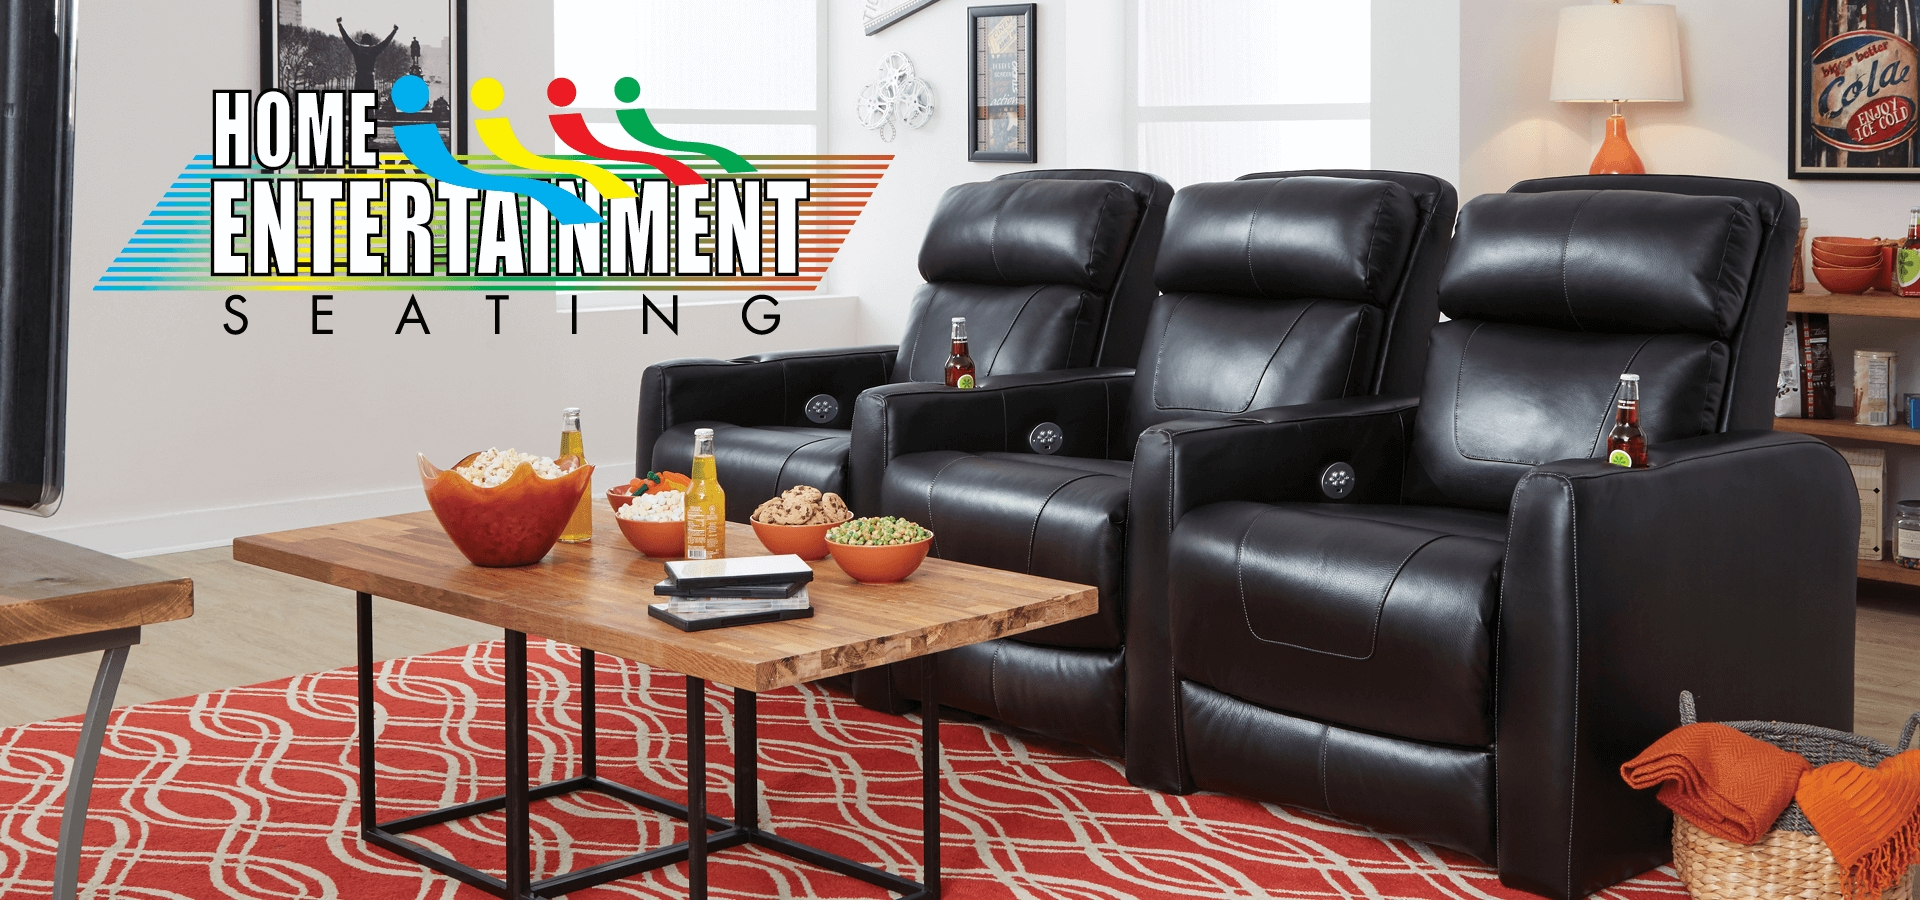 American-Made Motion Furniture & Reclining Living Room Sets in Travis Cognac Leather 6 Piece Power Reclining Sectionals With Power Headrest & Usb (Image 2 of 30)